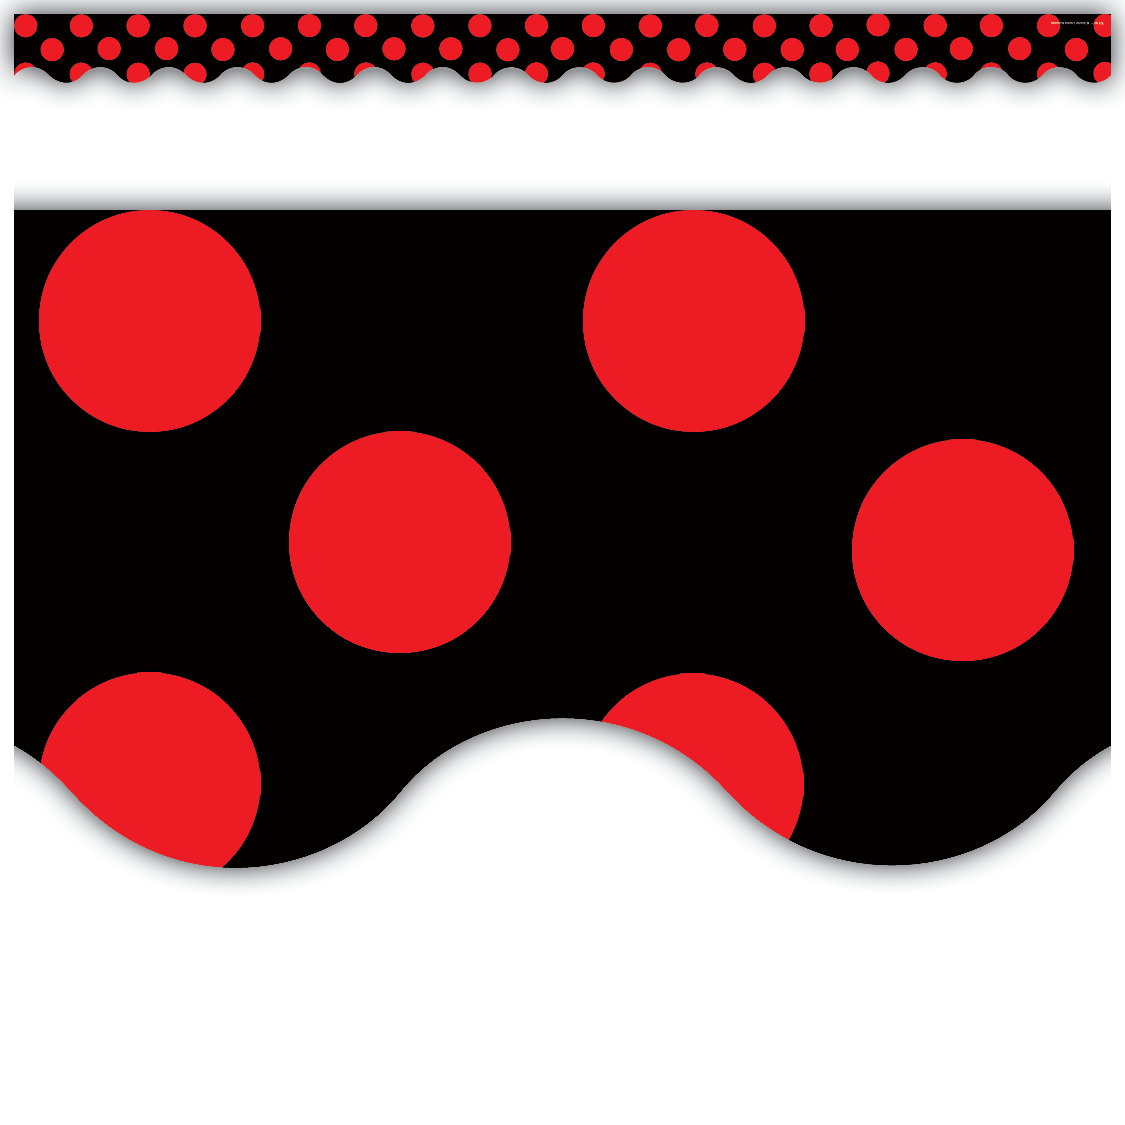 Polka Dot Stickers For Walls Red Polka Dots On Black Scalloped Border Trim Tcr4677